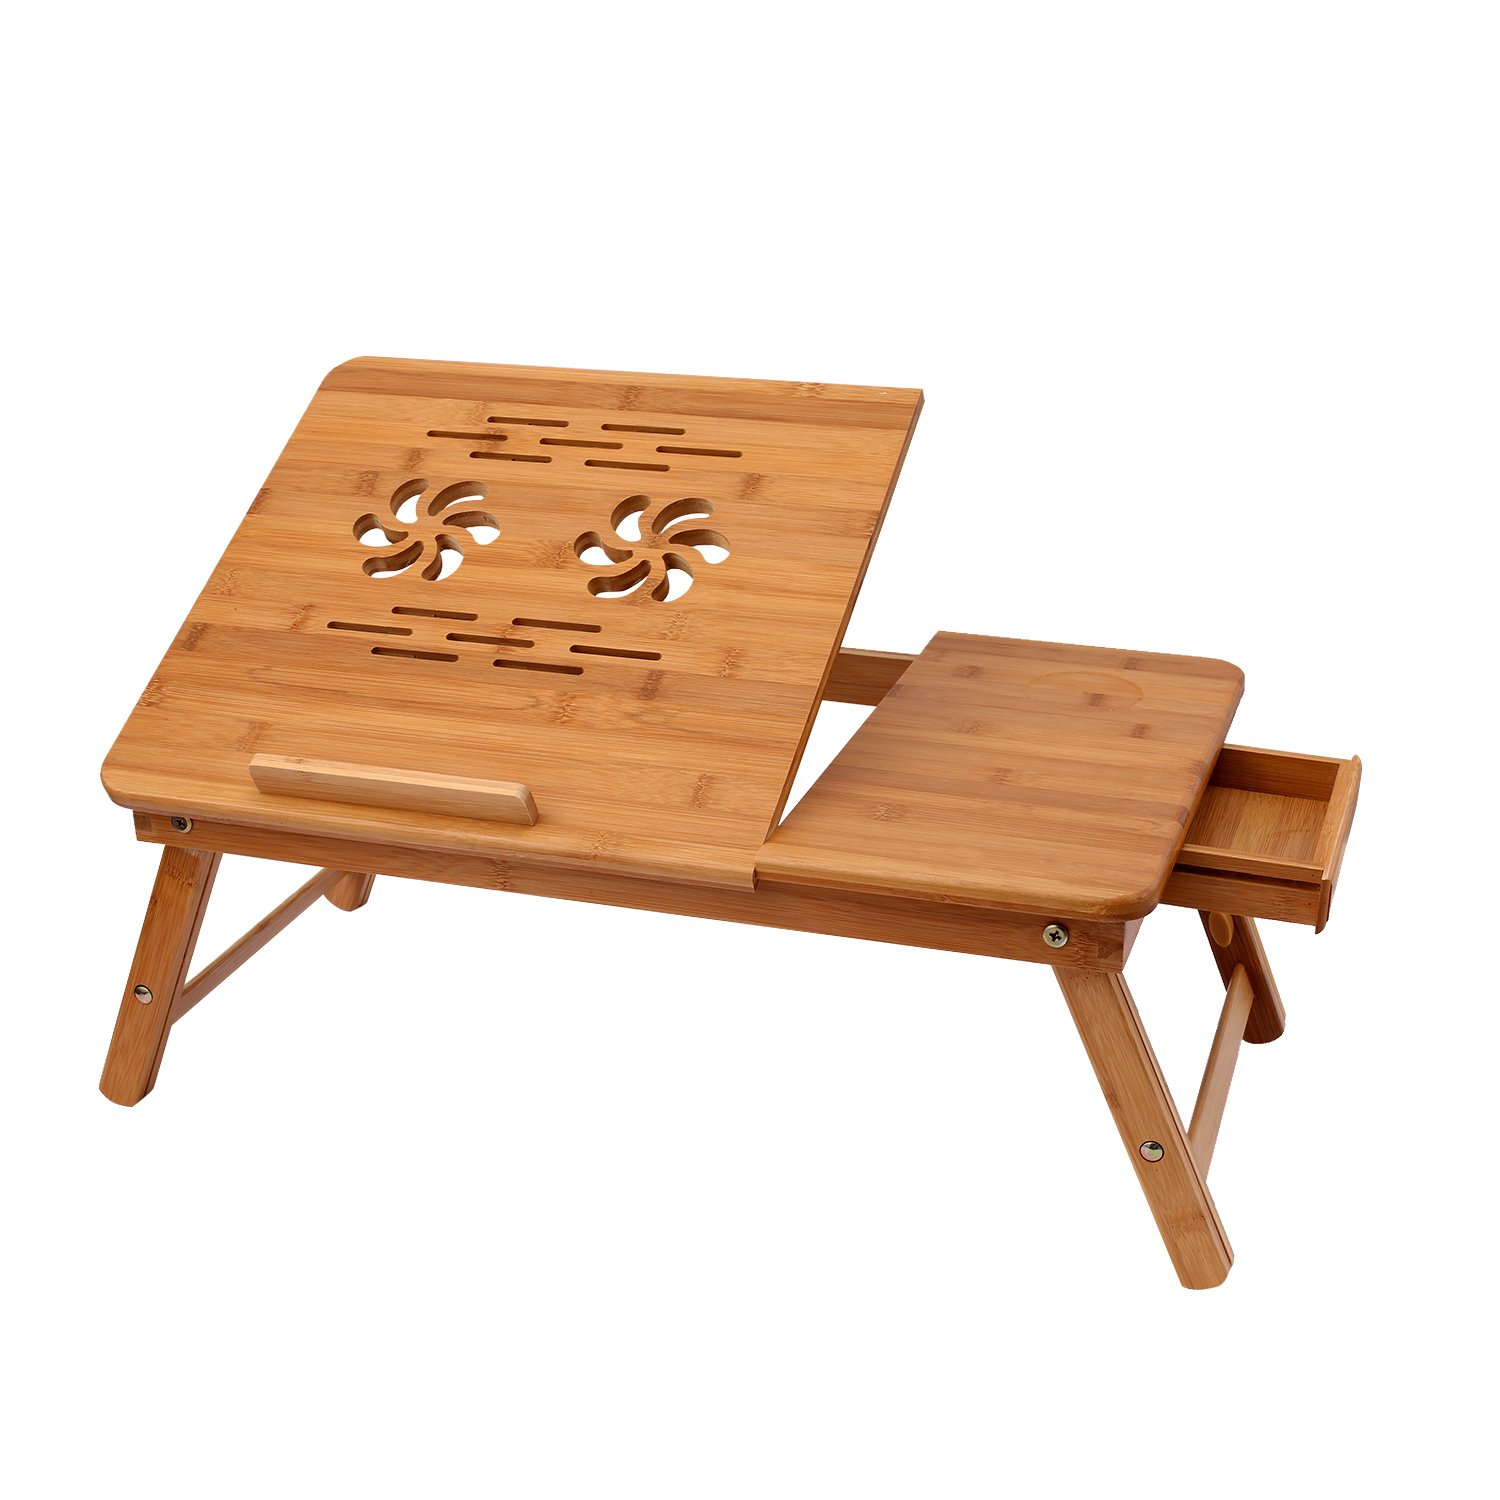 Homevol Bamboo Laptop Desk,Laptop Stand Adjustable Portable Breakfast Serving Bed Tray with Tilting Top Drawer & Cup Holder